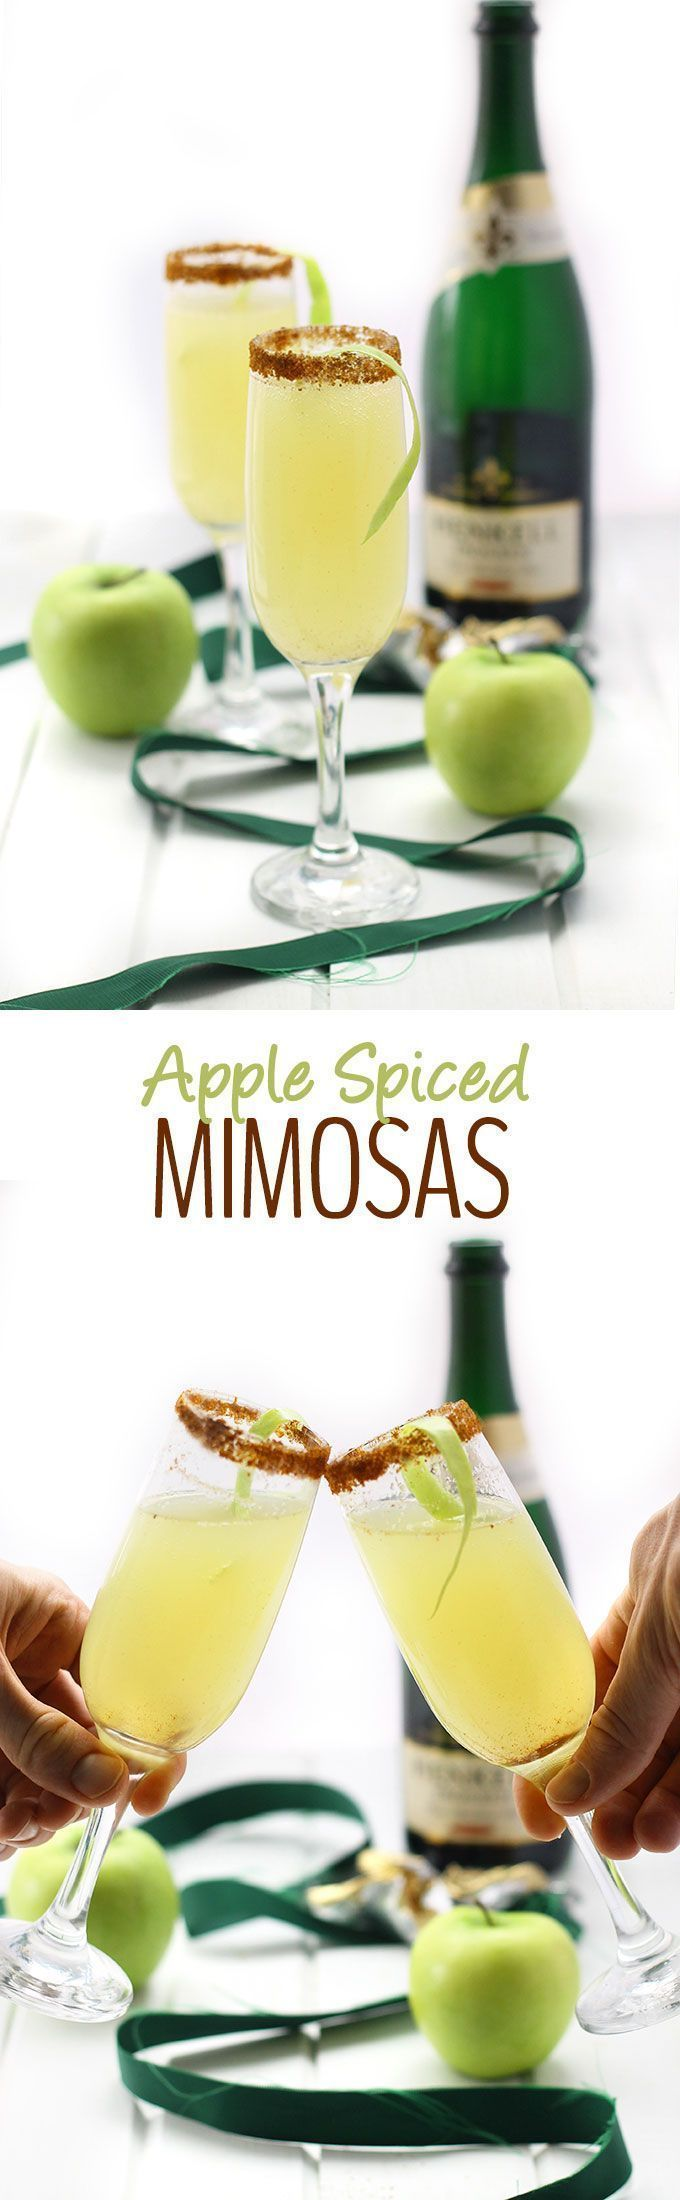 a festive cocktail recipe for New Years, brunch or your next dinner party, these Apple Spiced Mimosas will please any crowd! Plus they're super easy.